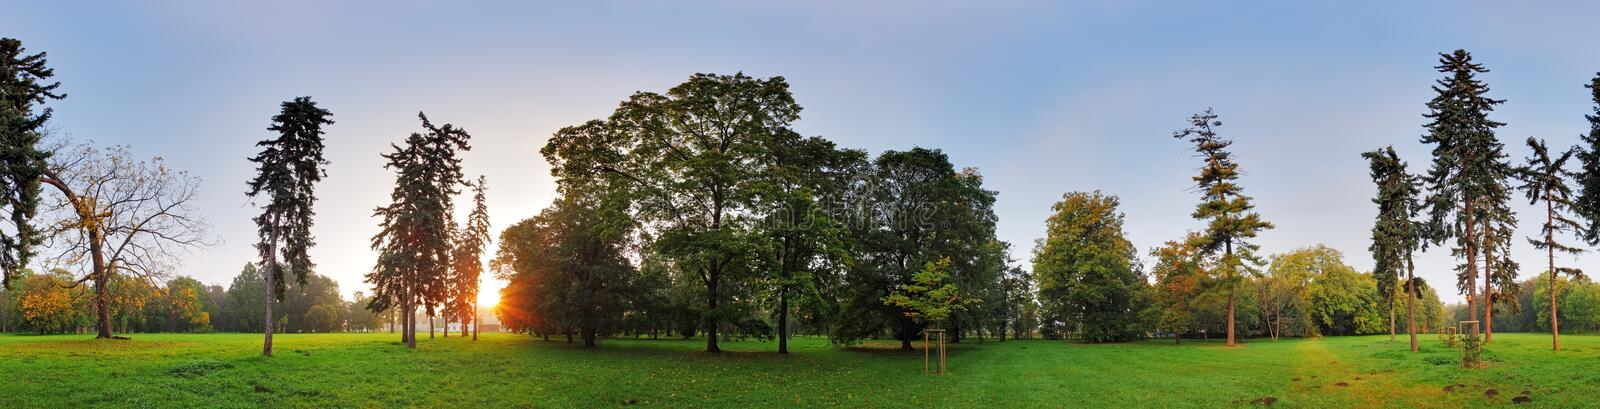 Download 360 Degree Panorama Forest In Park Stock Photo